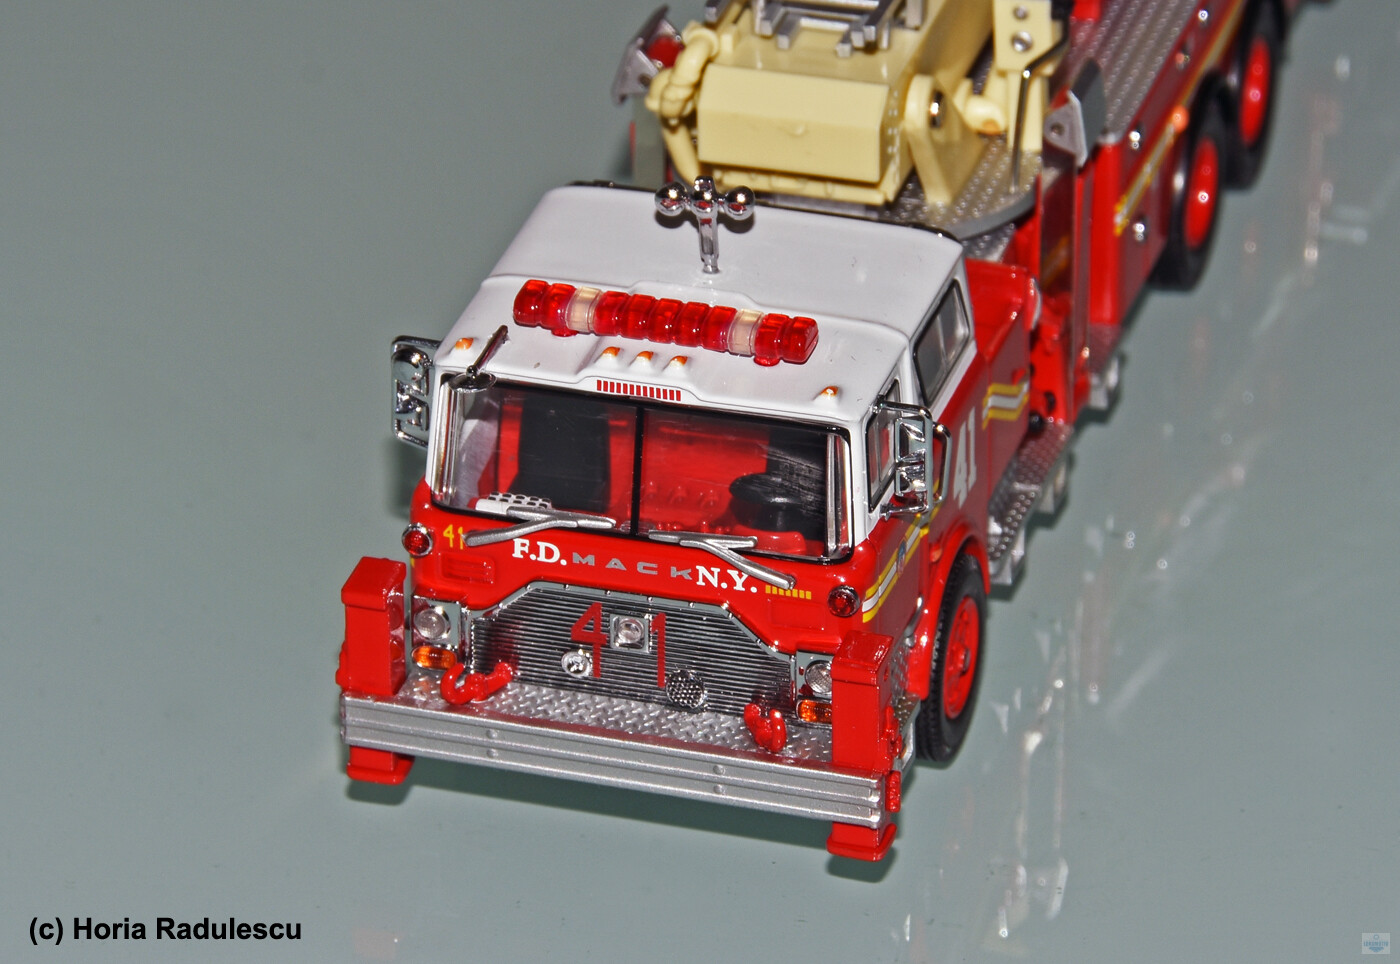 64-FDNY-Mack-CF-Ladder-41-5.jpg